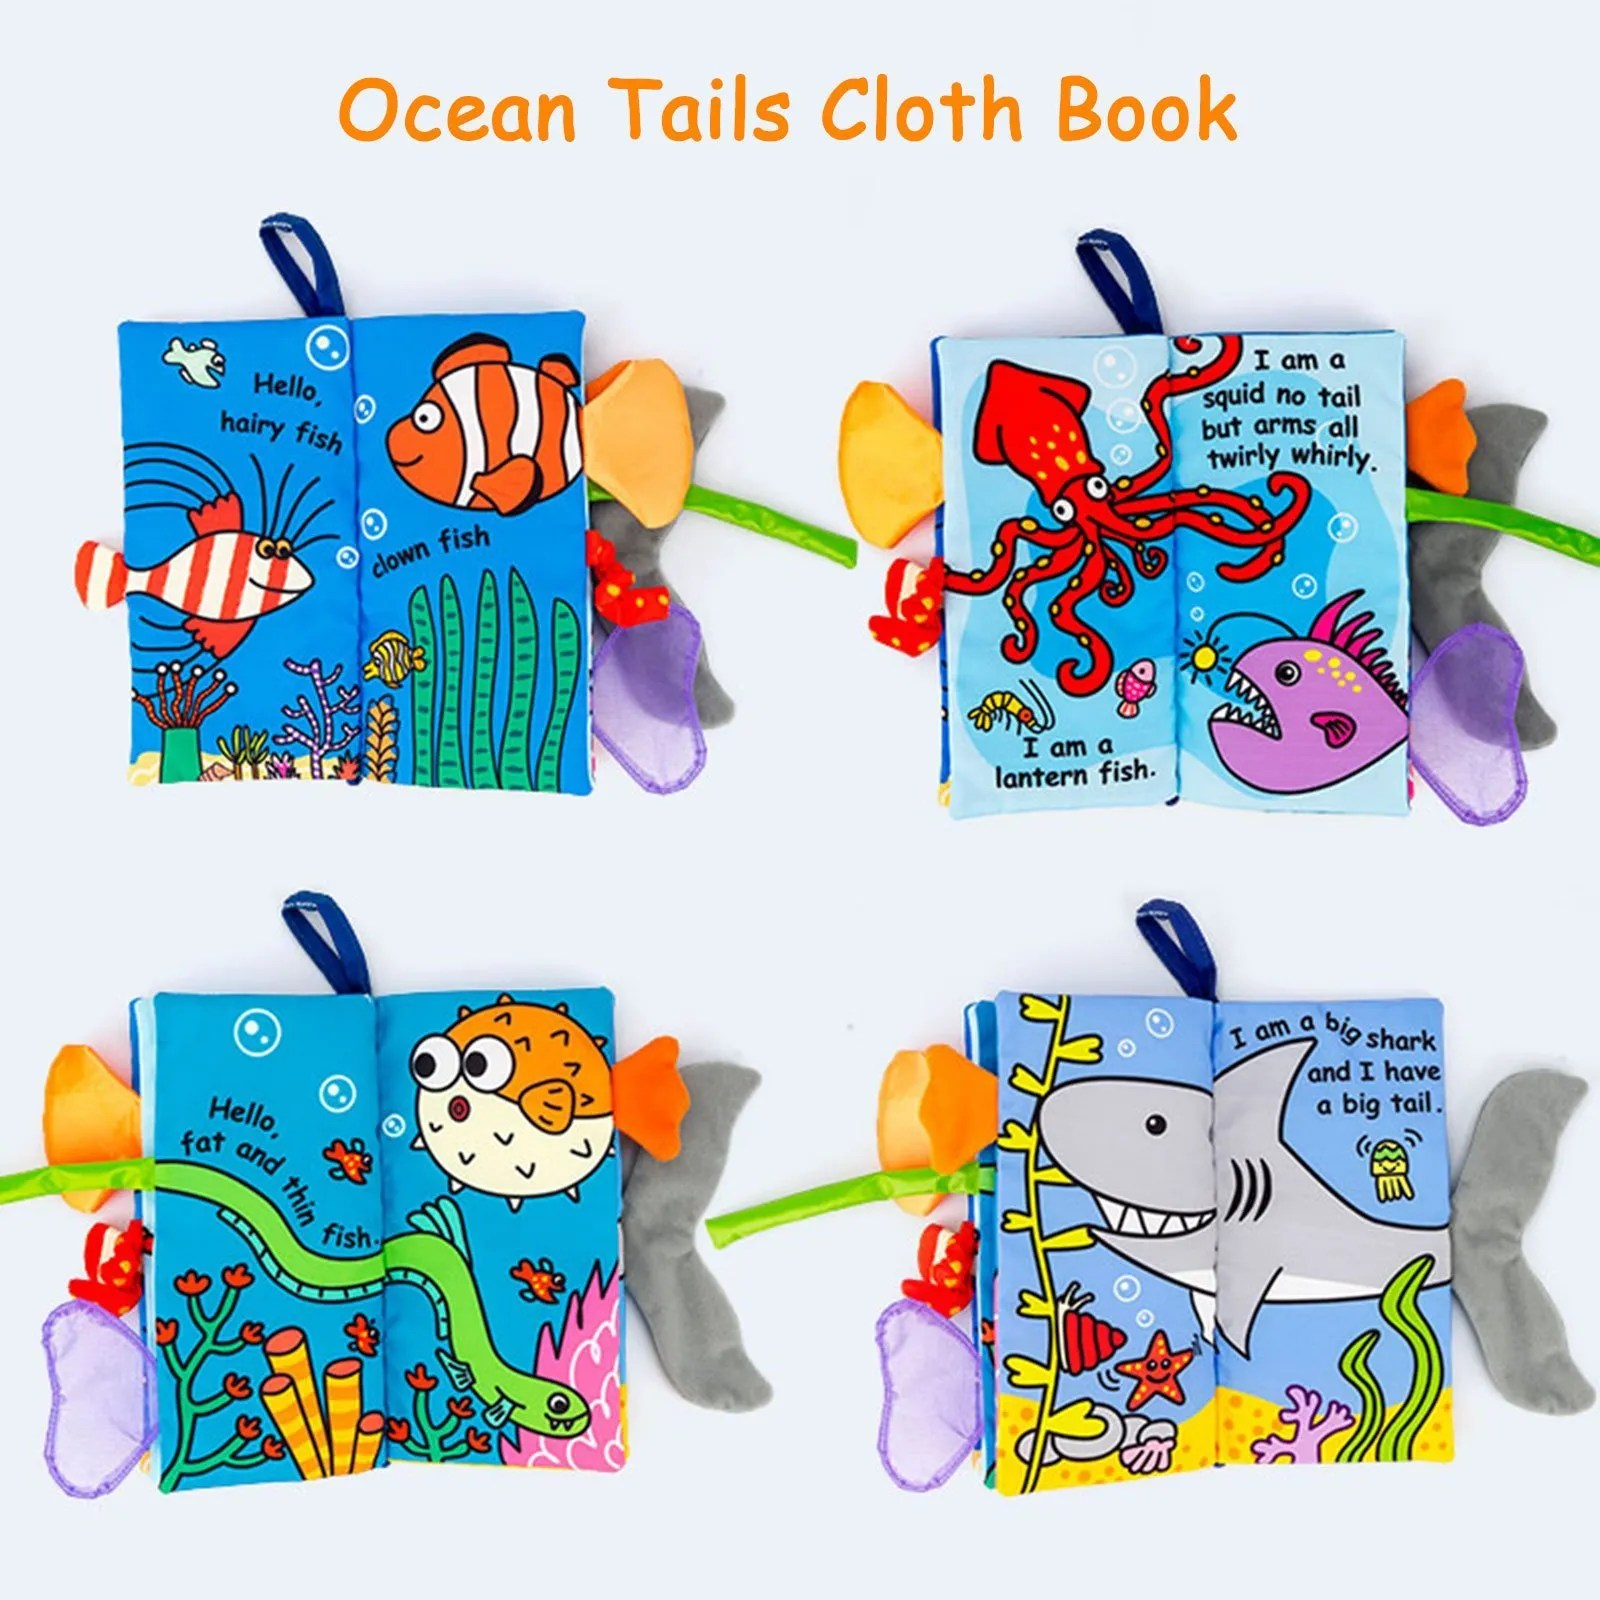 Baby soft book ocean tails